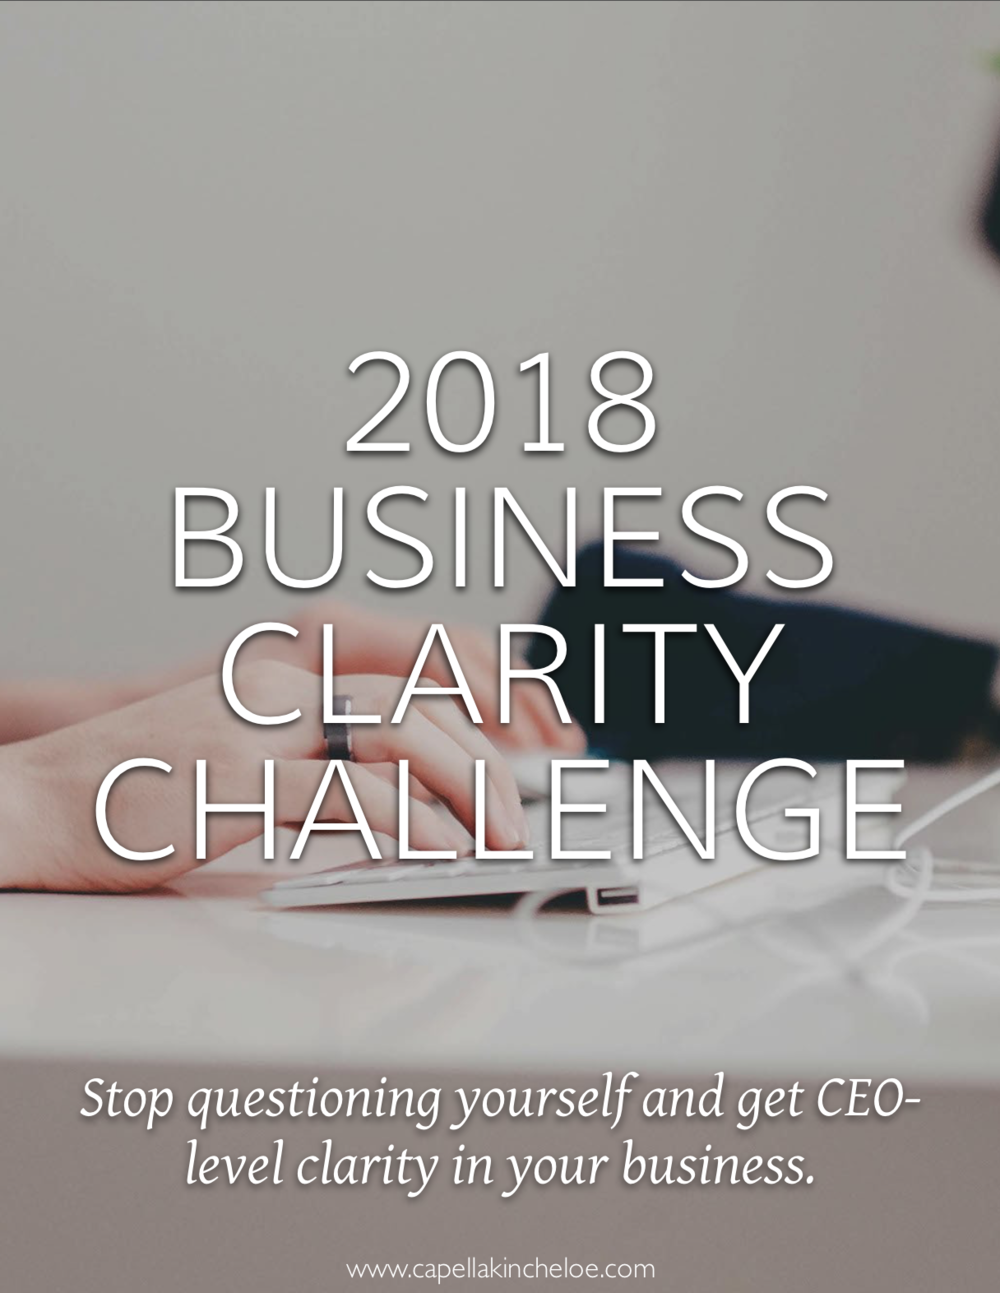 Stop questioning yourself in 2018. Get clear in your interior design business. Start acting like the CEO of your business.